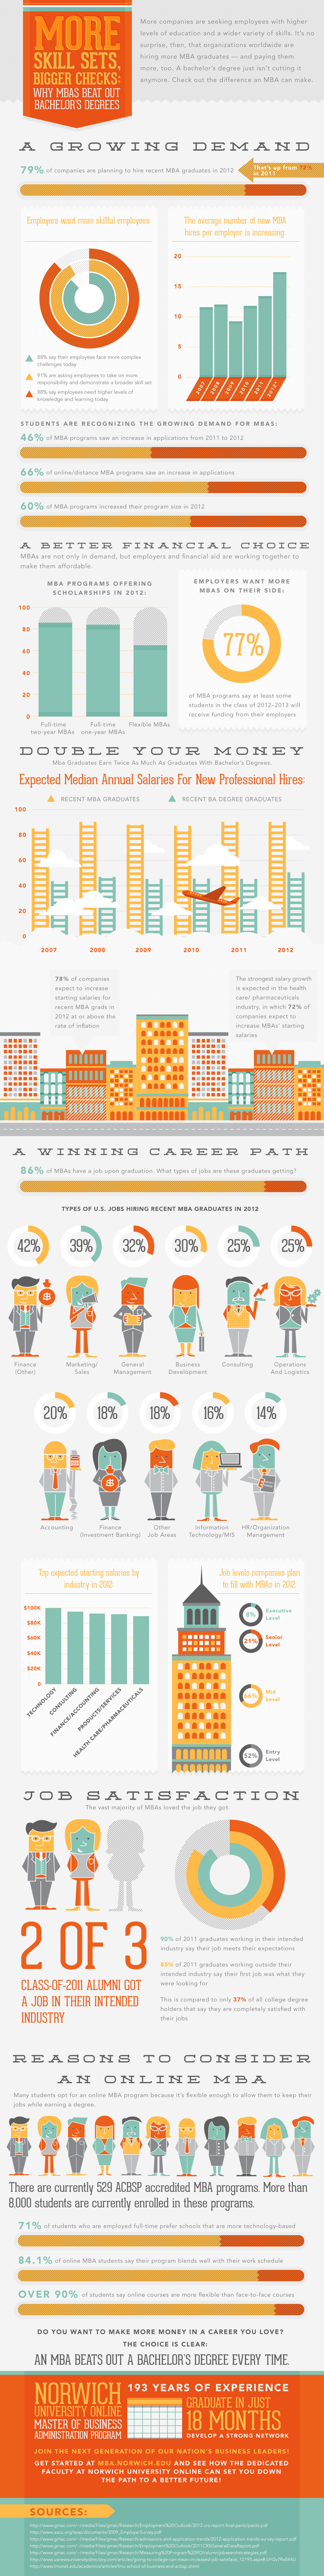 Infographic: More Skill Sets, Bigger Checks